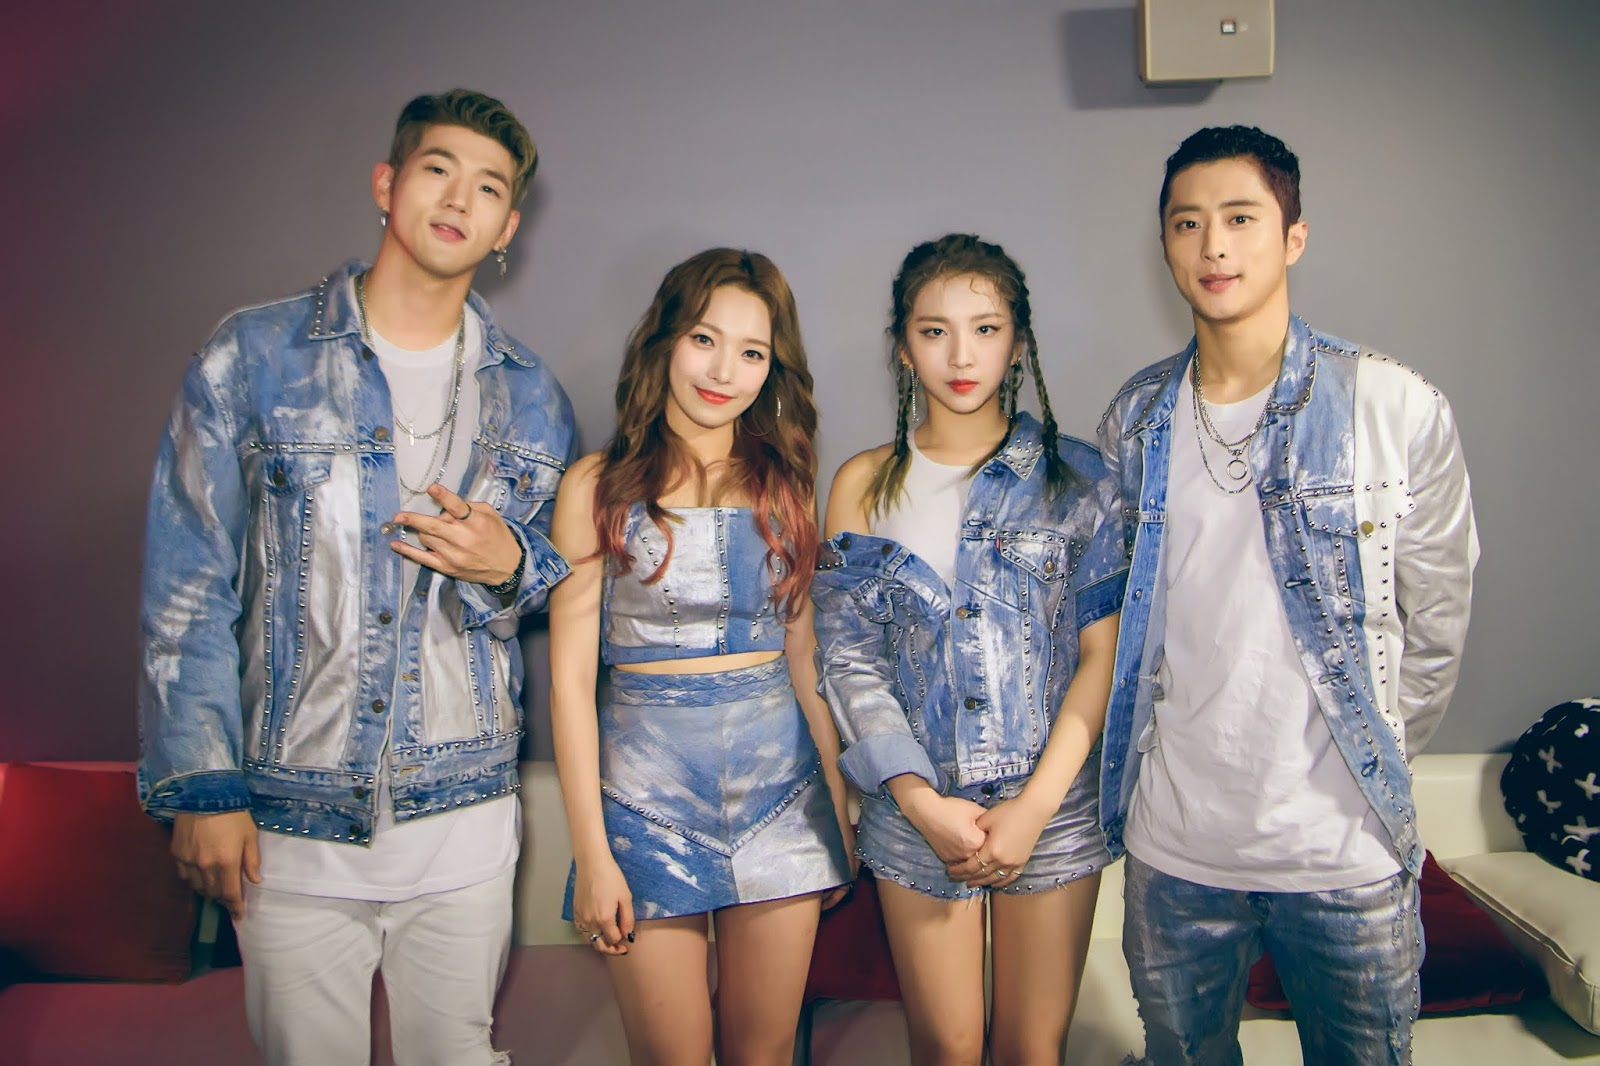 This Mexican Group Cheating on K.A.R.D's Concept and Music, DSP Media Will Take Legal Action